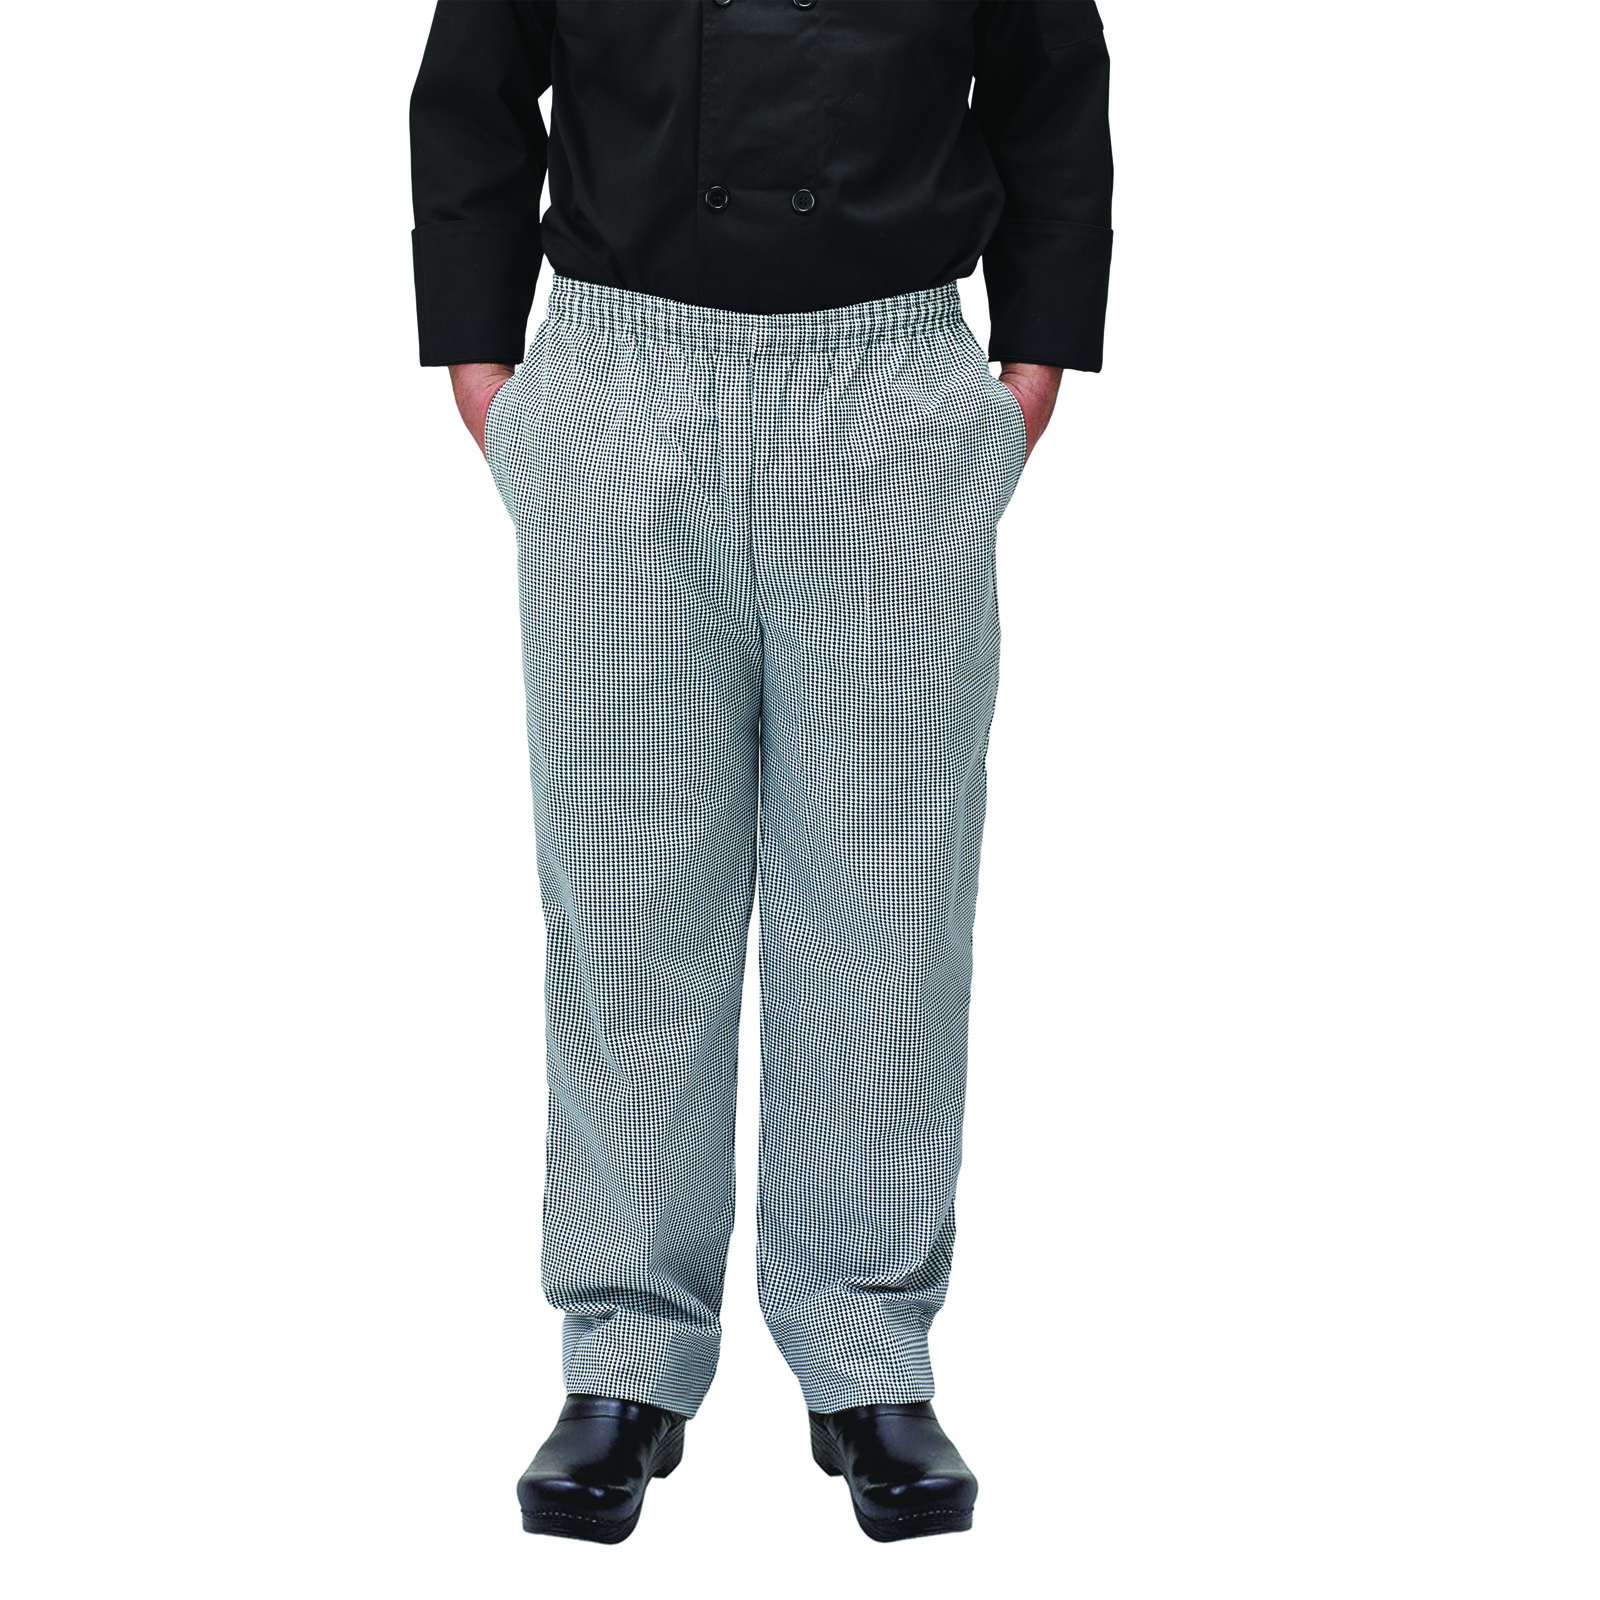 Winco UNF-4KM chef's pants